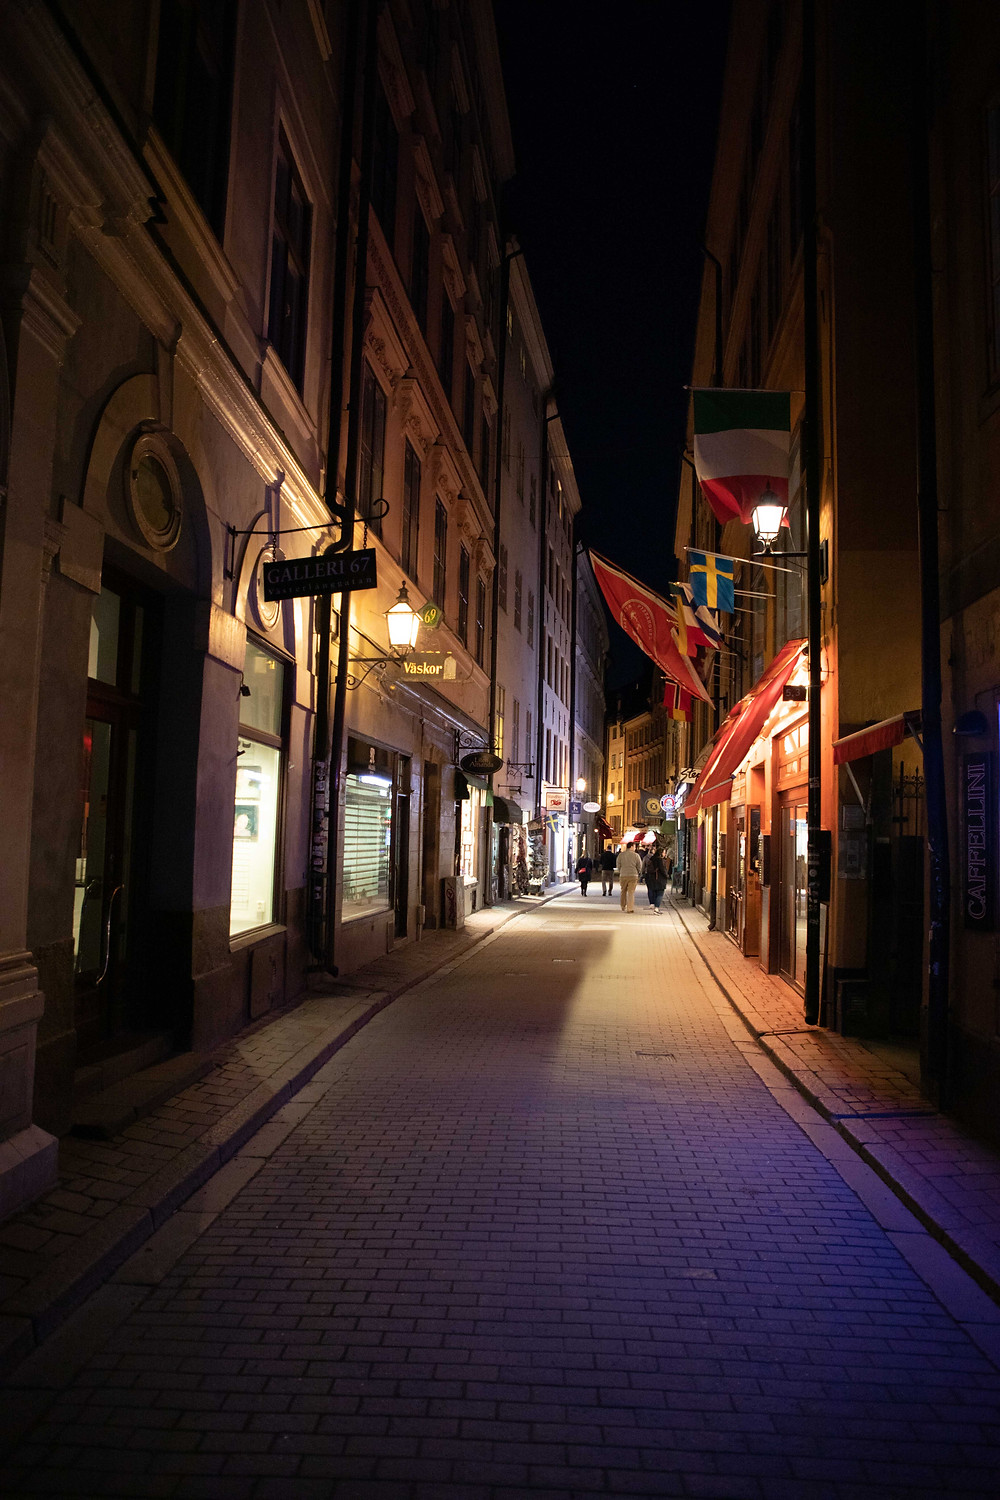 One of the Main streets of Gamla Stan, Stockholm with shops and restaurants.